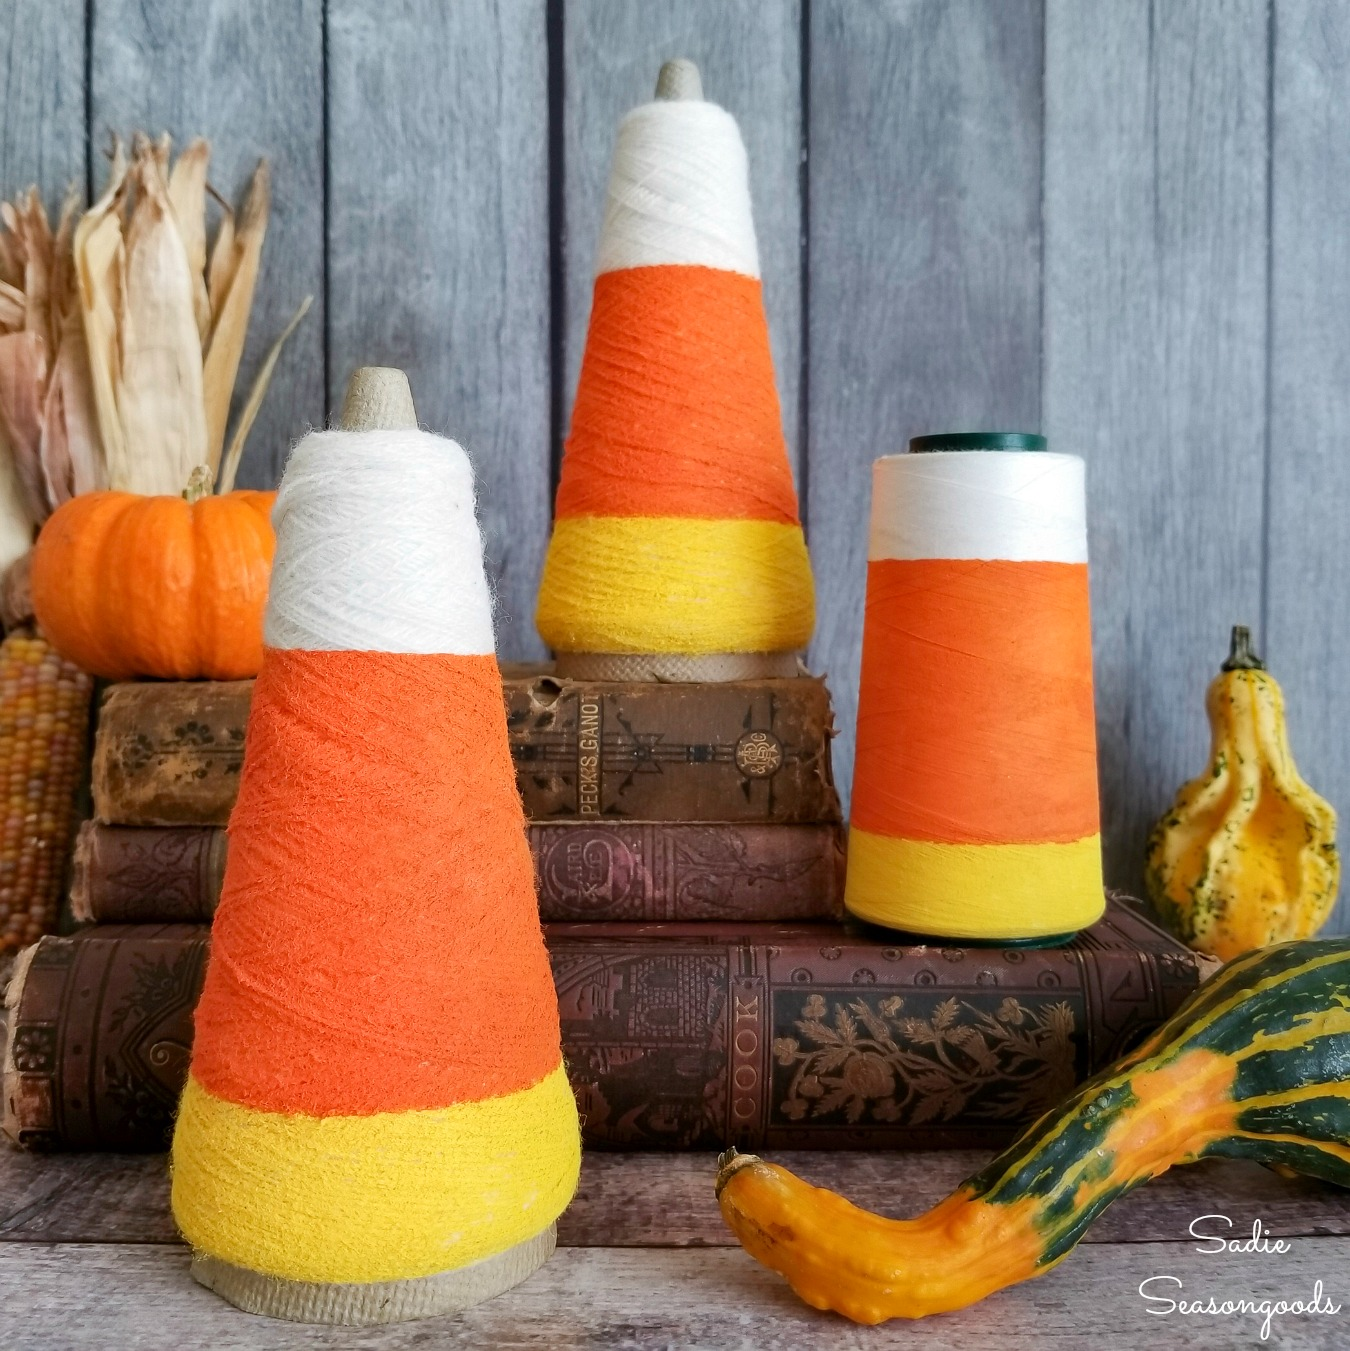 Candy Corn Decorations from Thread Cones for Cute Halloween Decor